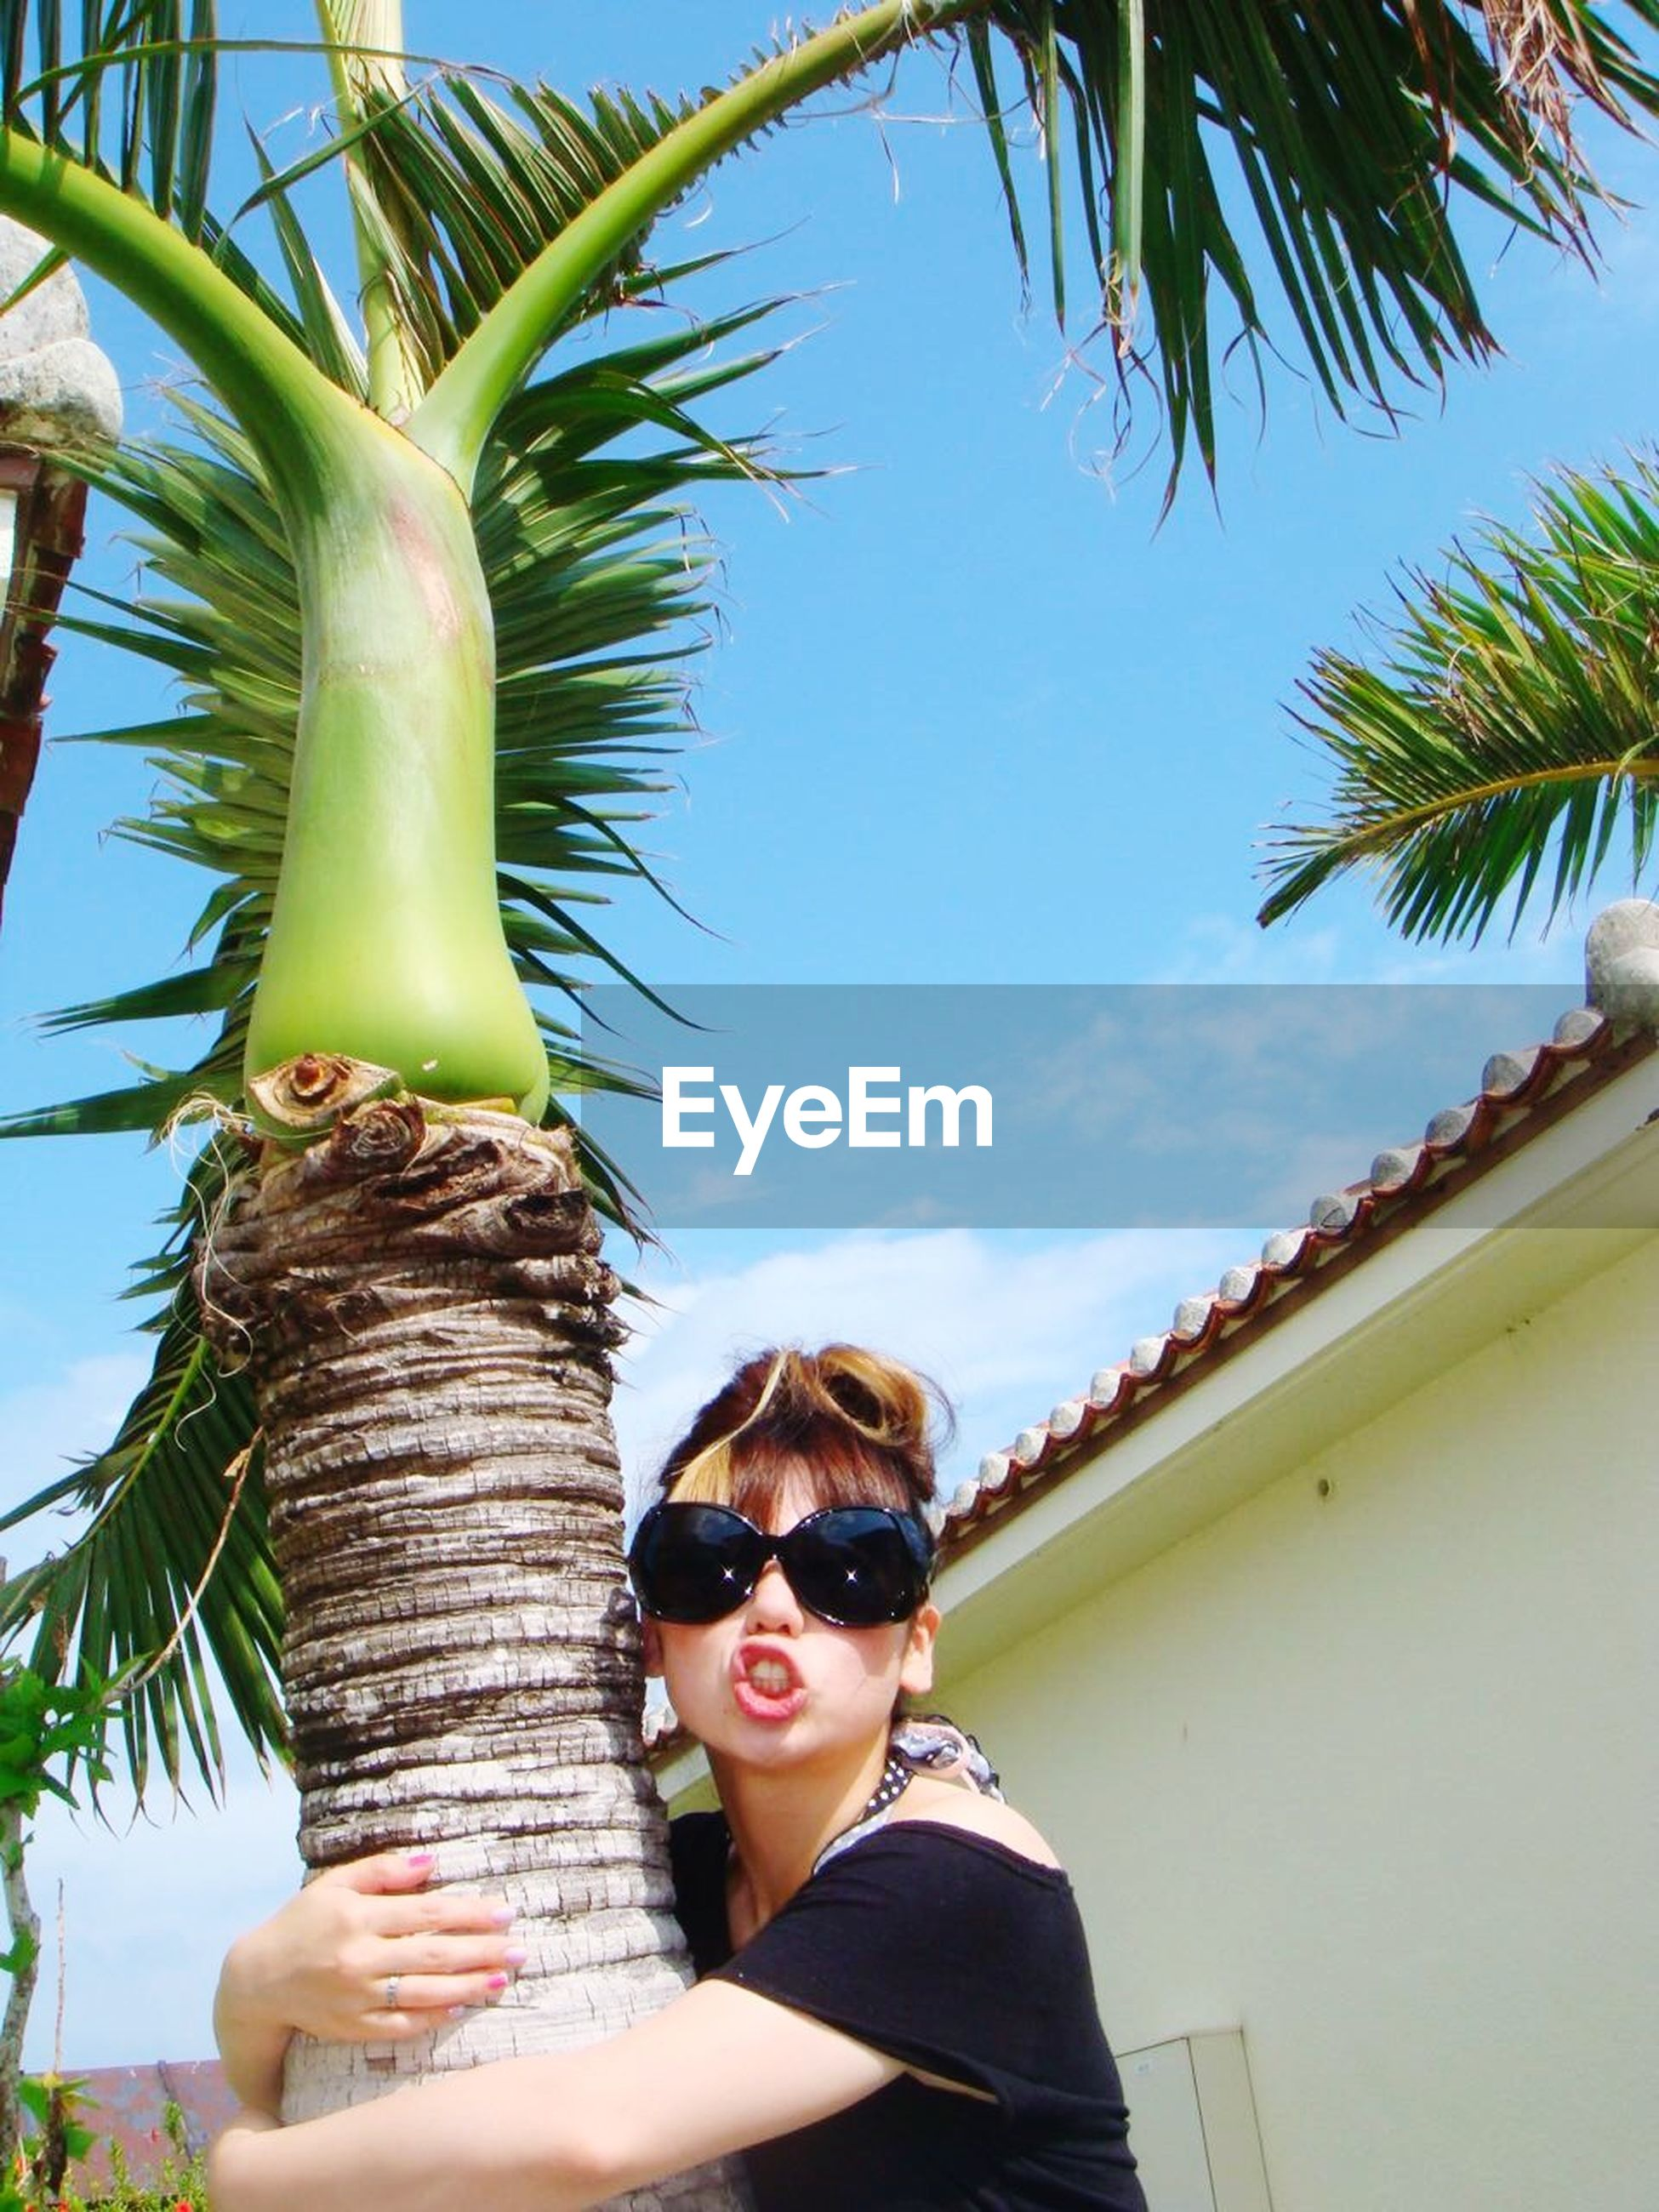 young adult, palm tree, lifestyles, person, leisure activity, looking at camera, portrait, front view, young women, tree, sky, sunglasses, low angle view, casual clothing, smiling, sunlight, headshot